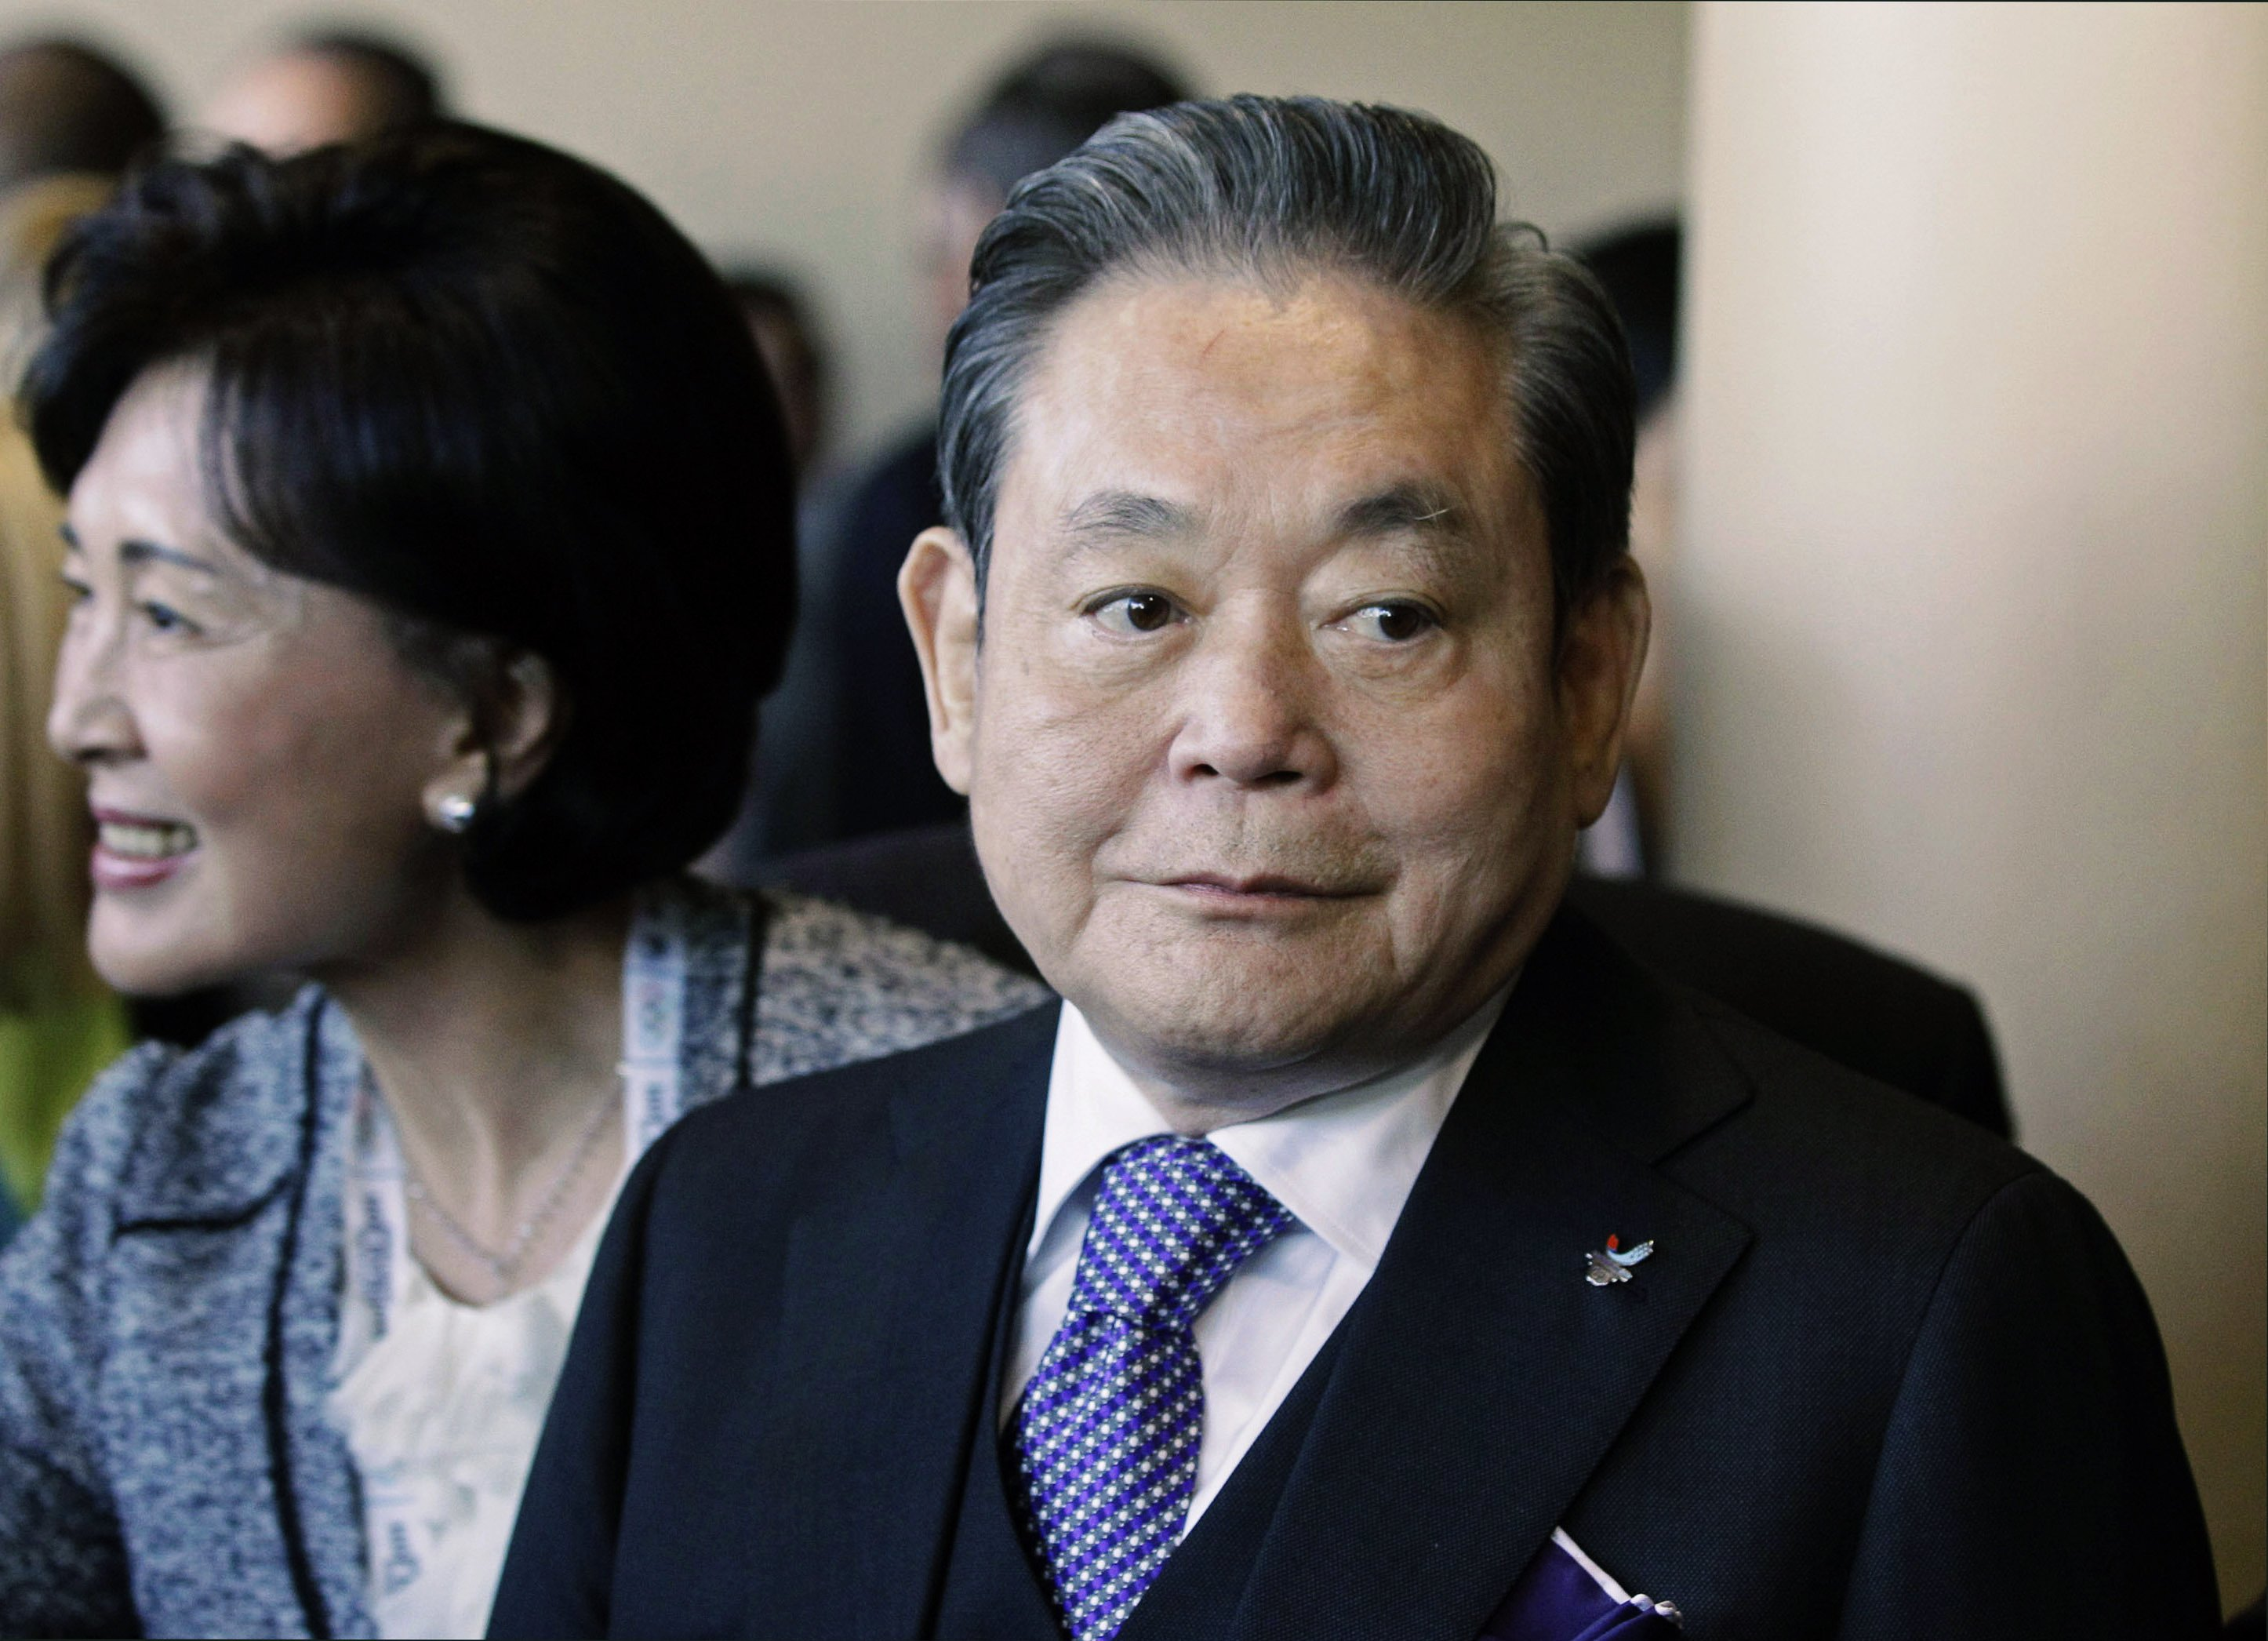 Samsung Electronics chairman Lee Kun-Hee, who transformed the small television maker into a global giant of consumer electronics, has died. He was 78.